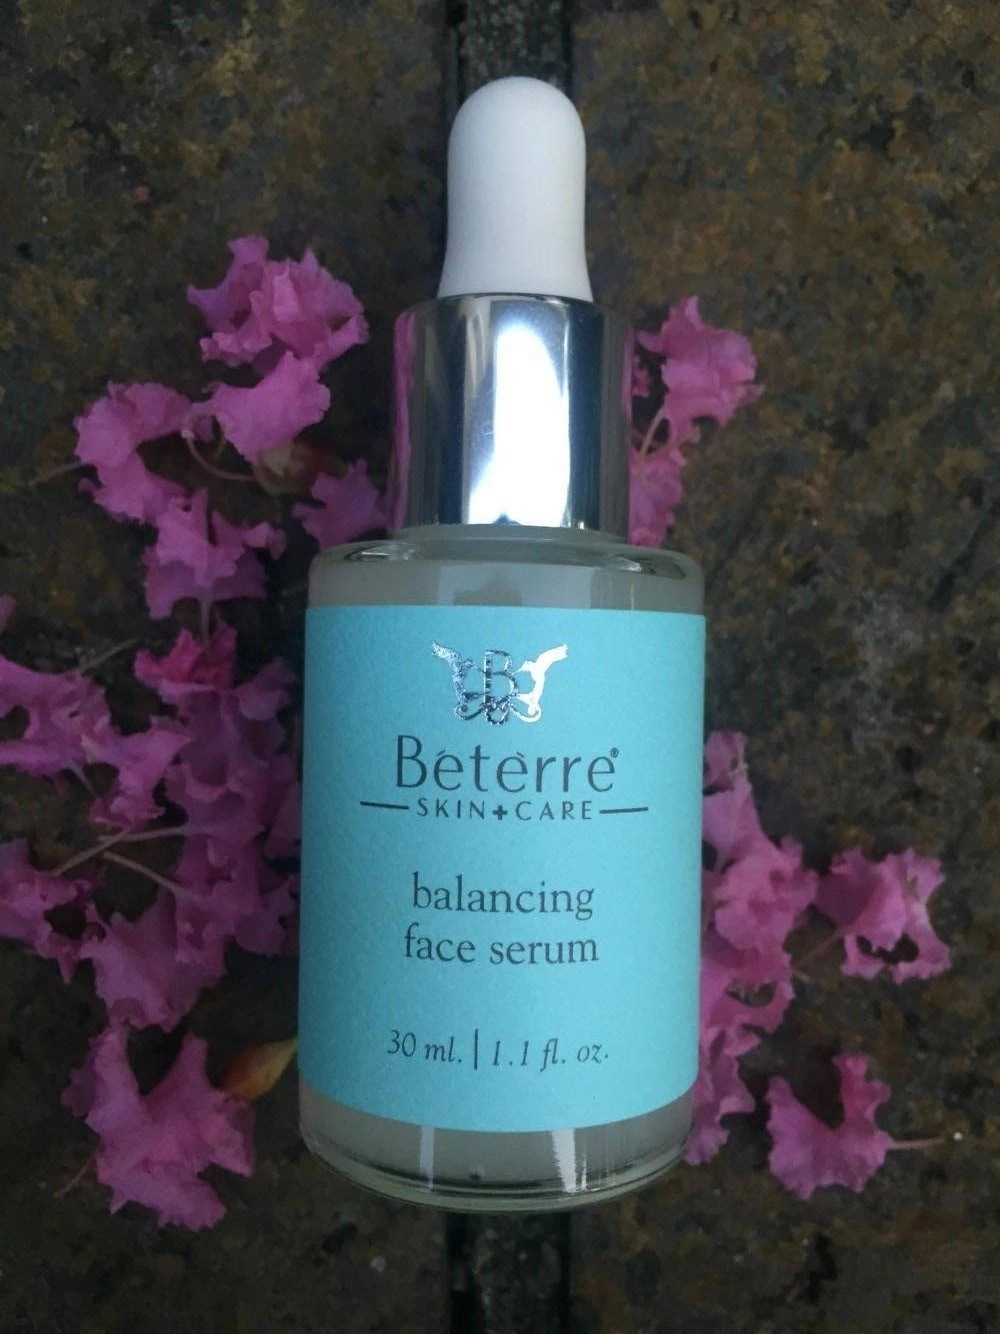 Beterre Skin + Care Balancing Face Serum